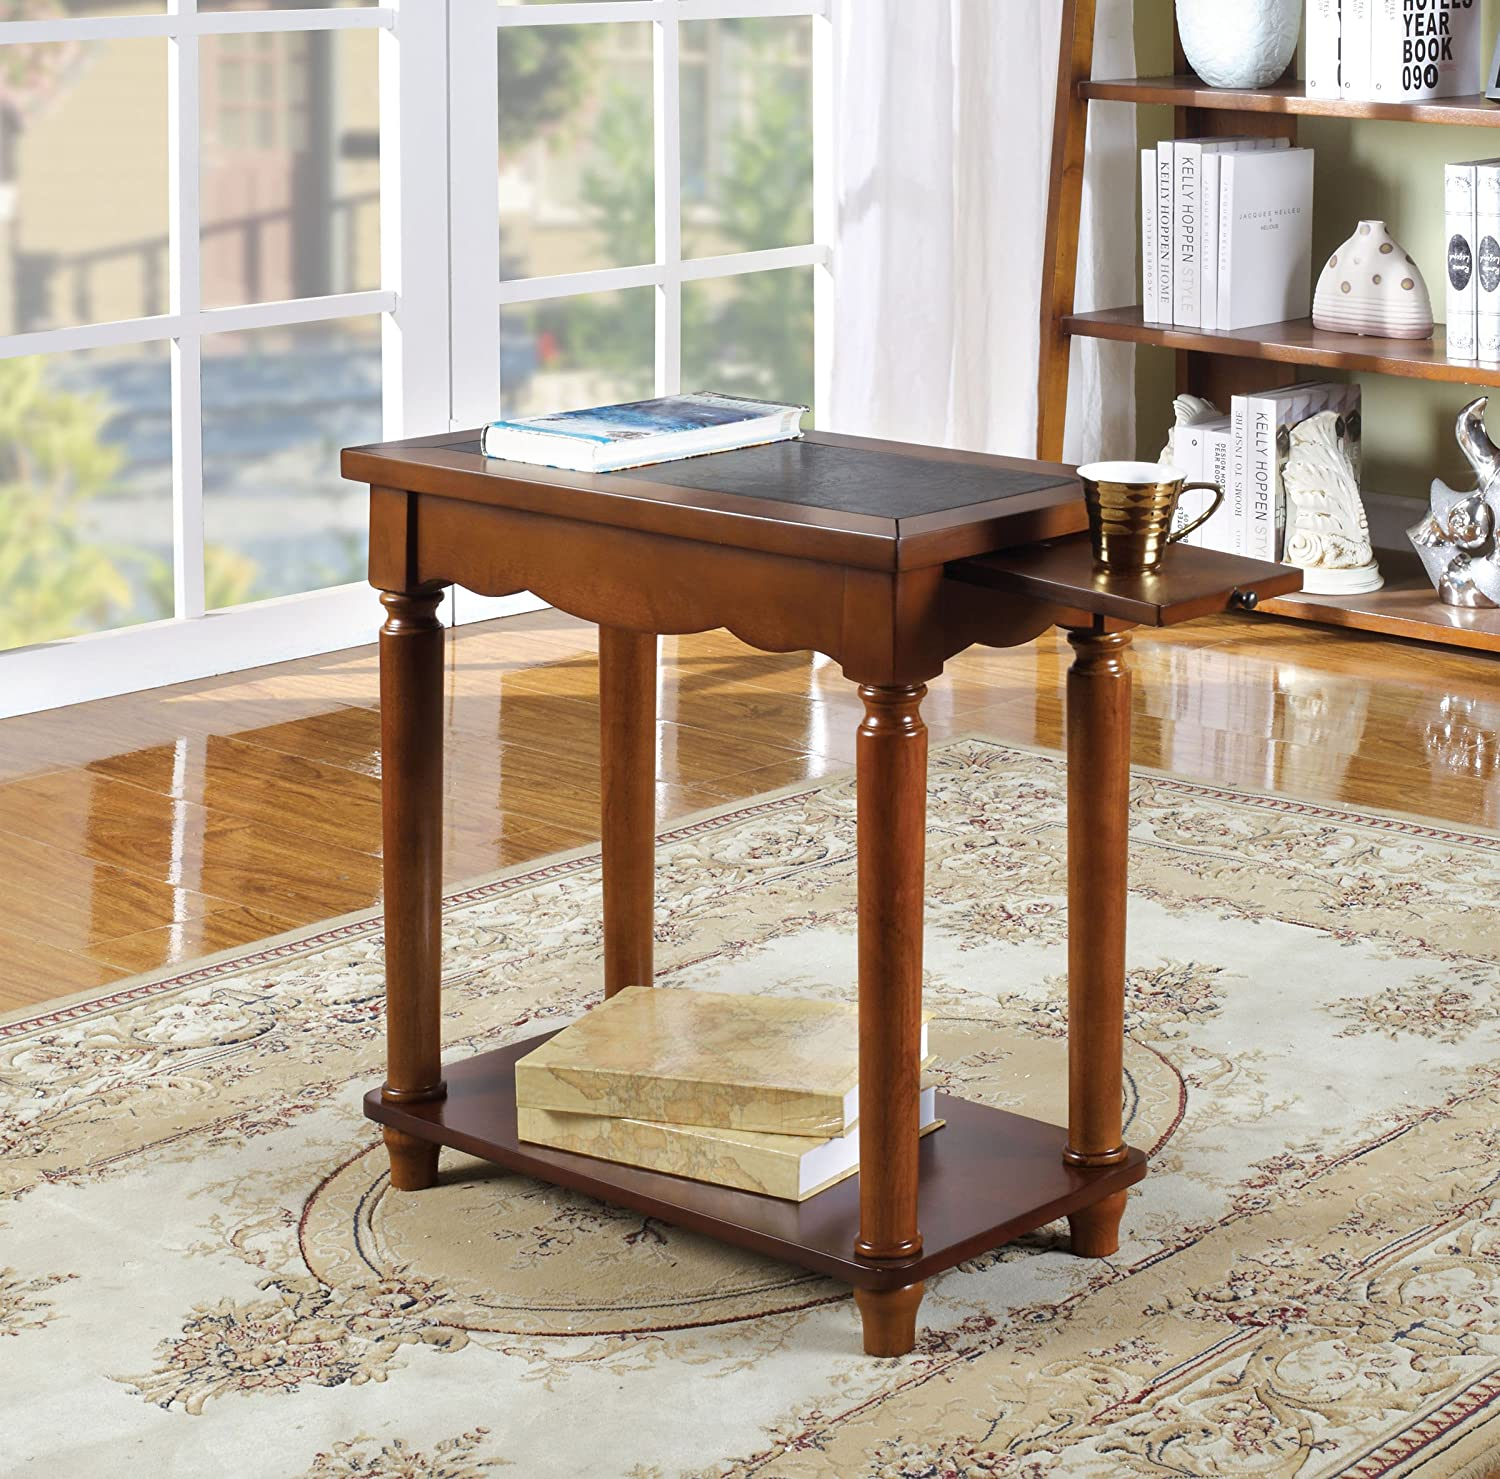 Yenice Side Table in Antique Oak Finish